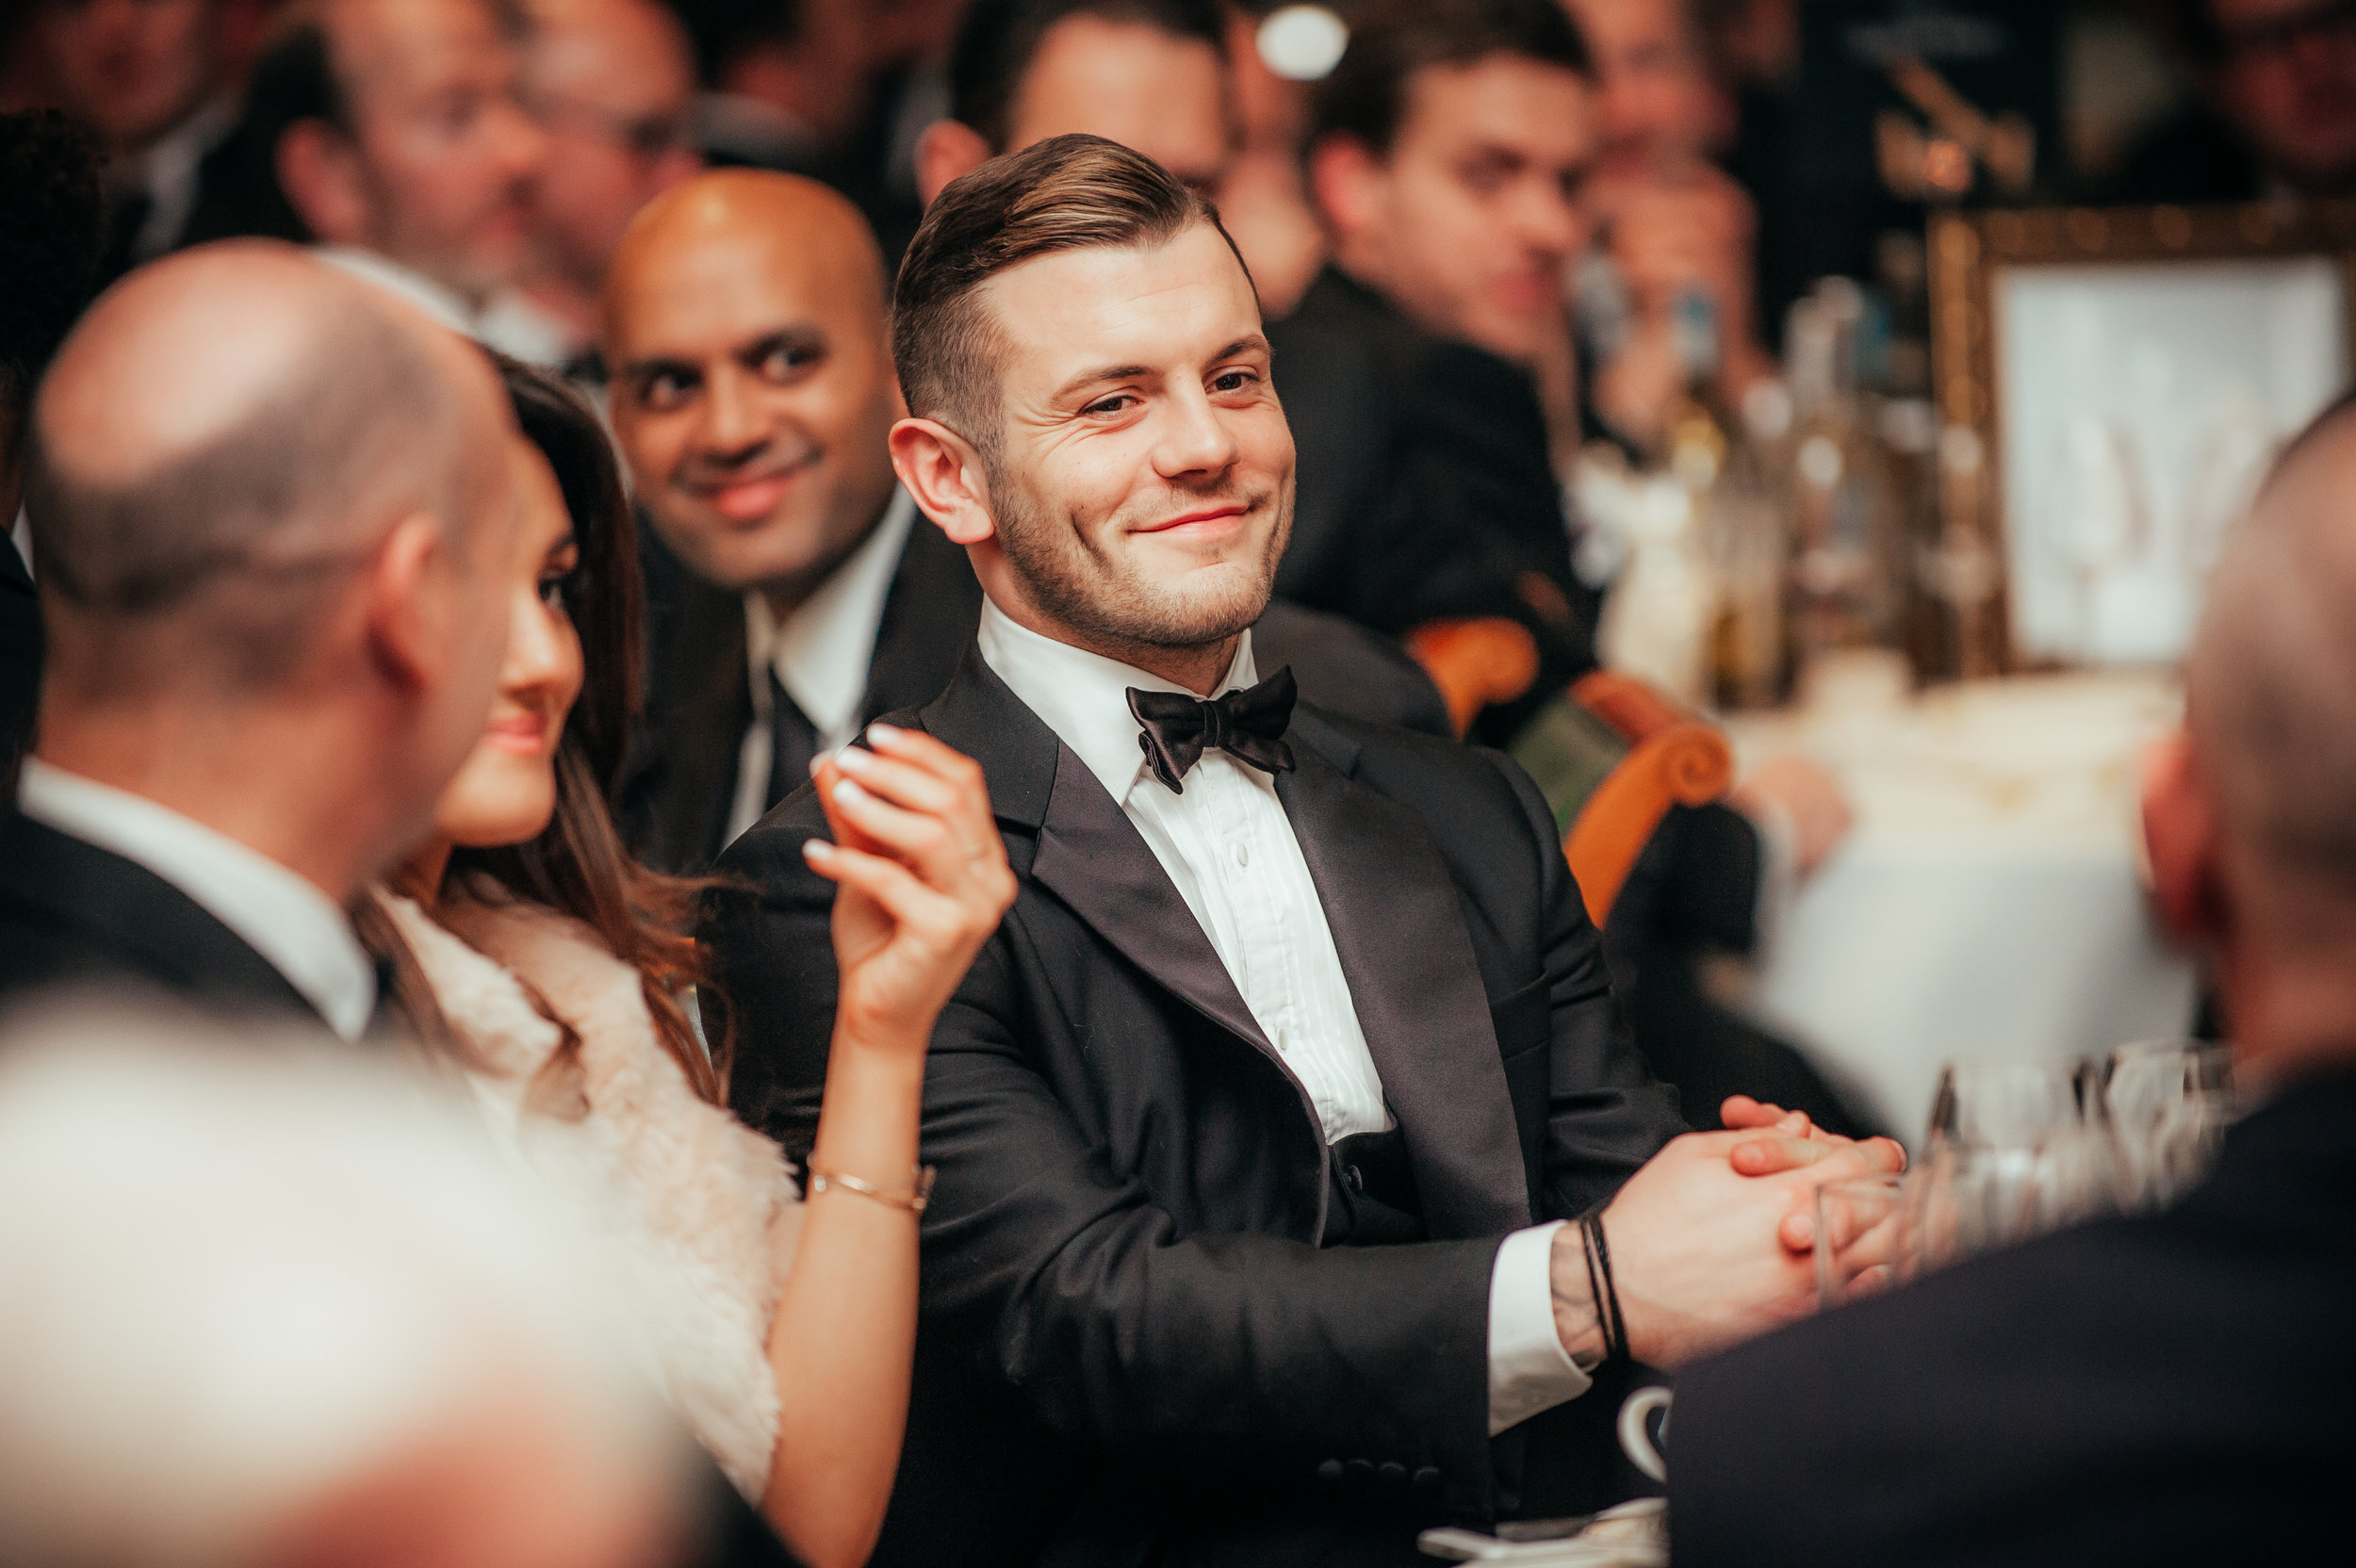 Jack Wilshere attends a charity fundraiser at Lords cricket ground.